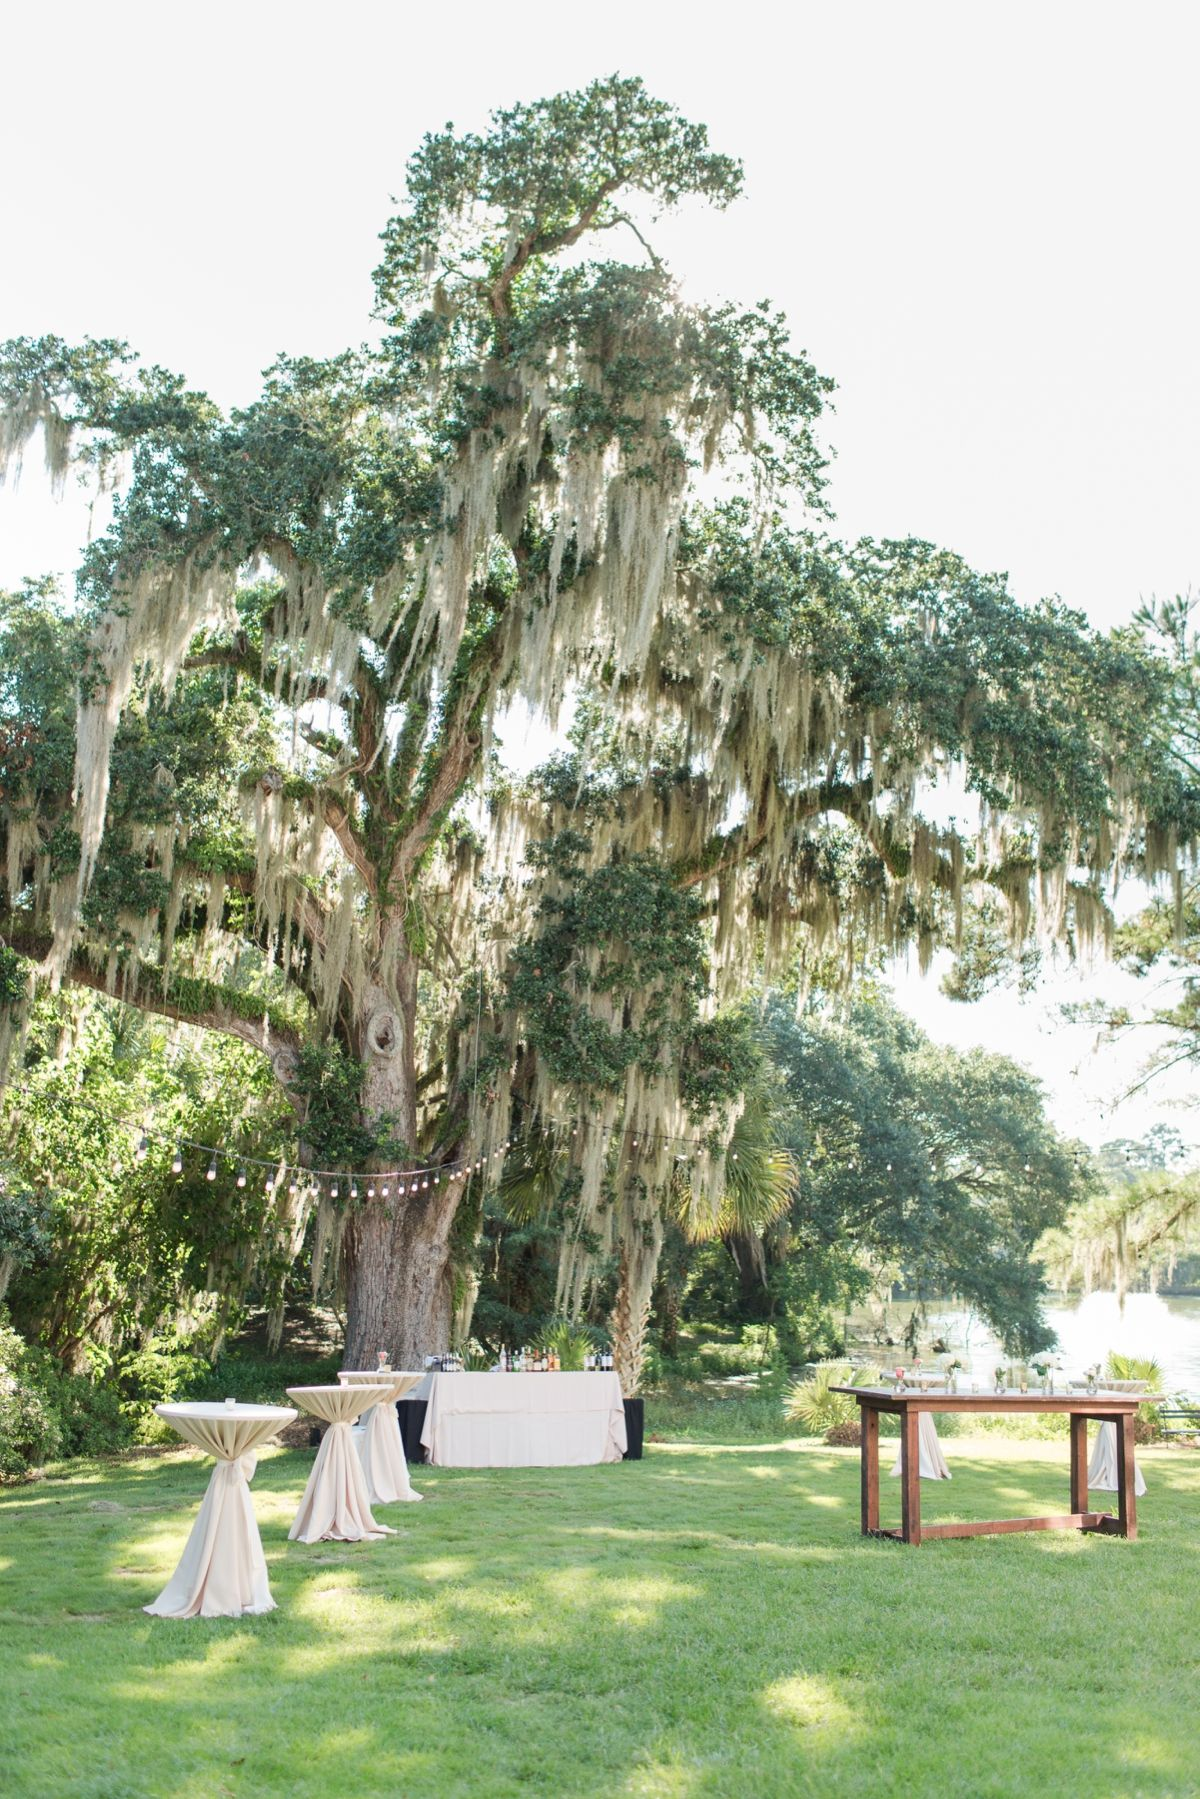 Charleston wedding venue south carolina wedding plantation wedding charleston wedding venue south carolina wedding plantation wedding southern wedding outdoor ceremony tent reception open air cocktail hour junglespirit Images